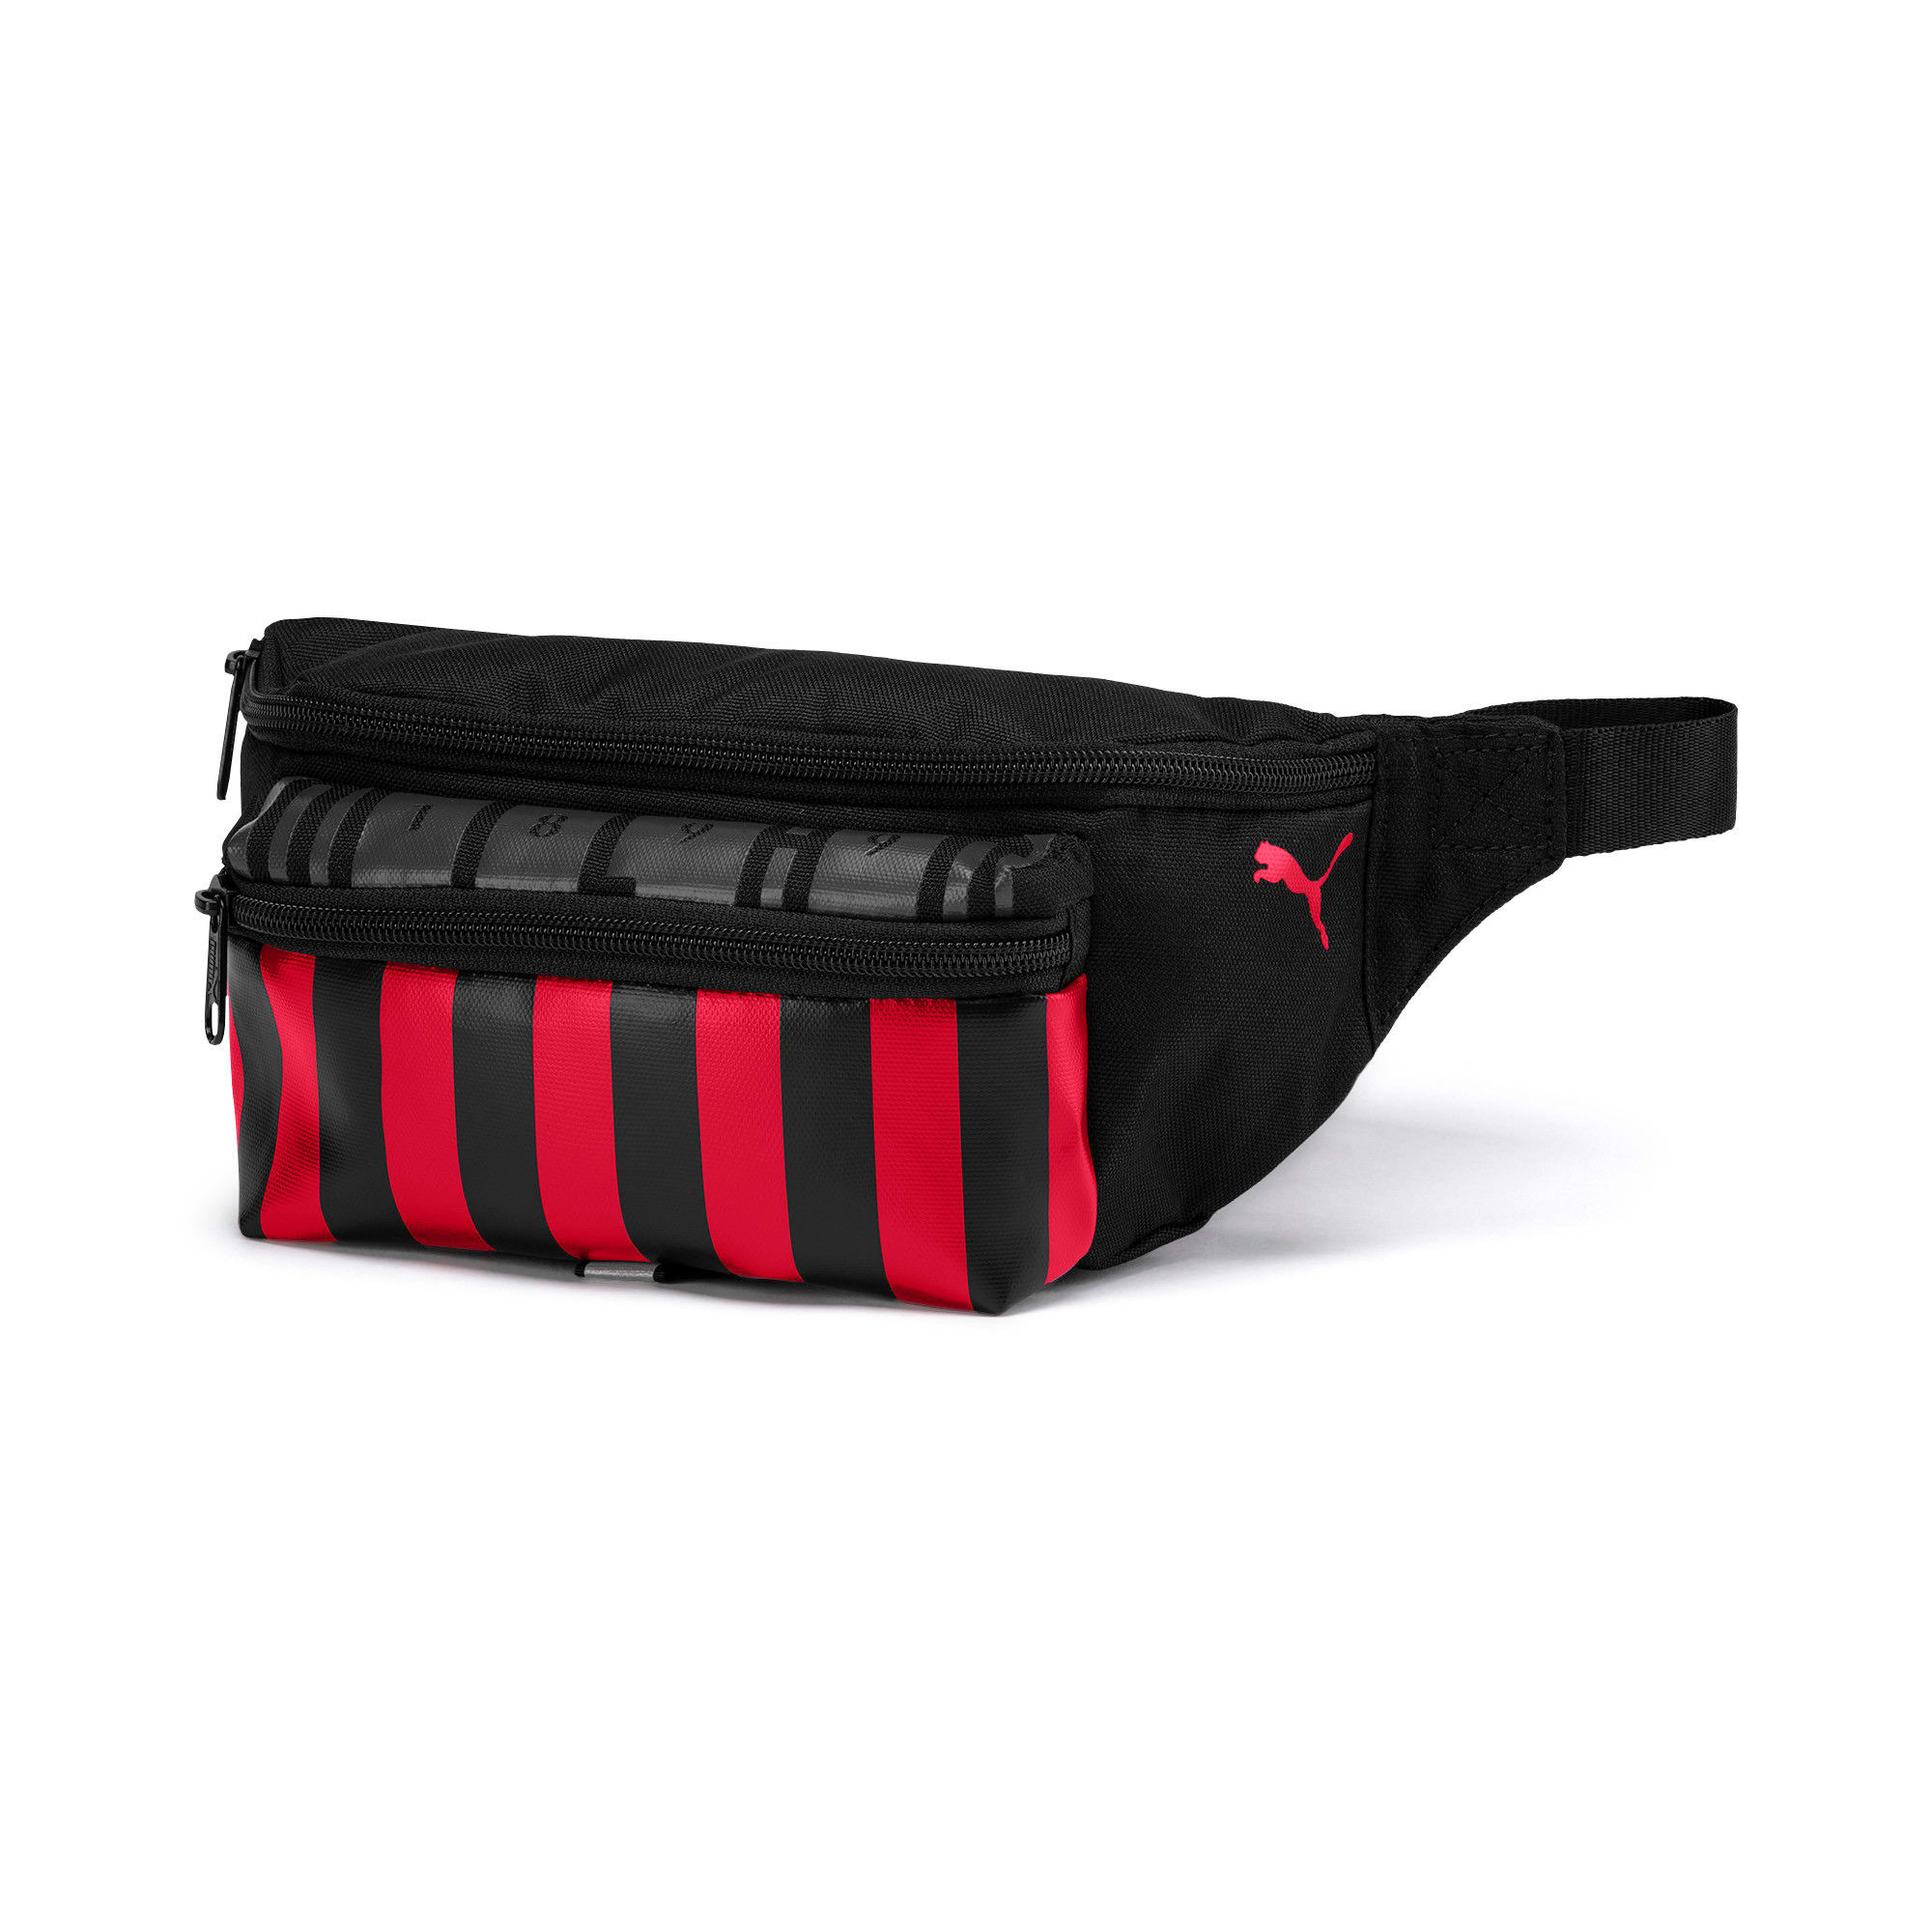 Thumbnail 1 of AC Milan Football Culture Waist Bag, Puma Black-Tango Red, medium